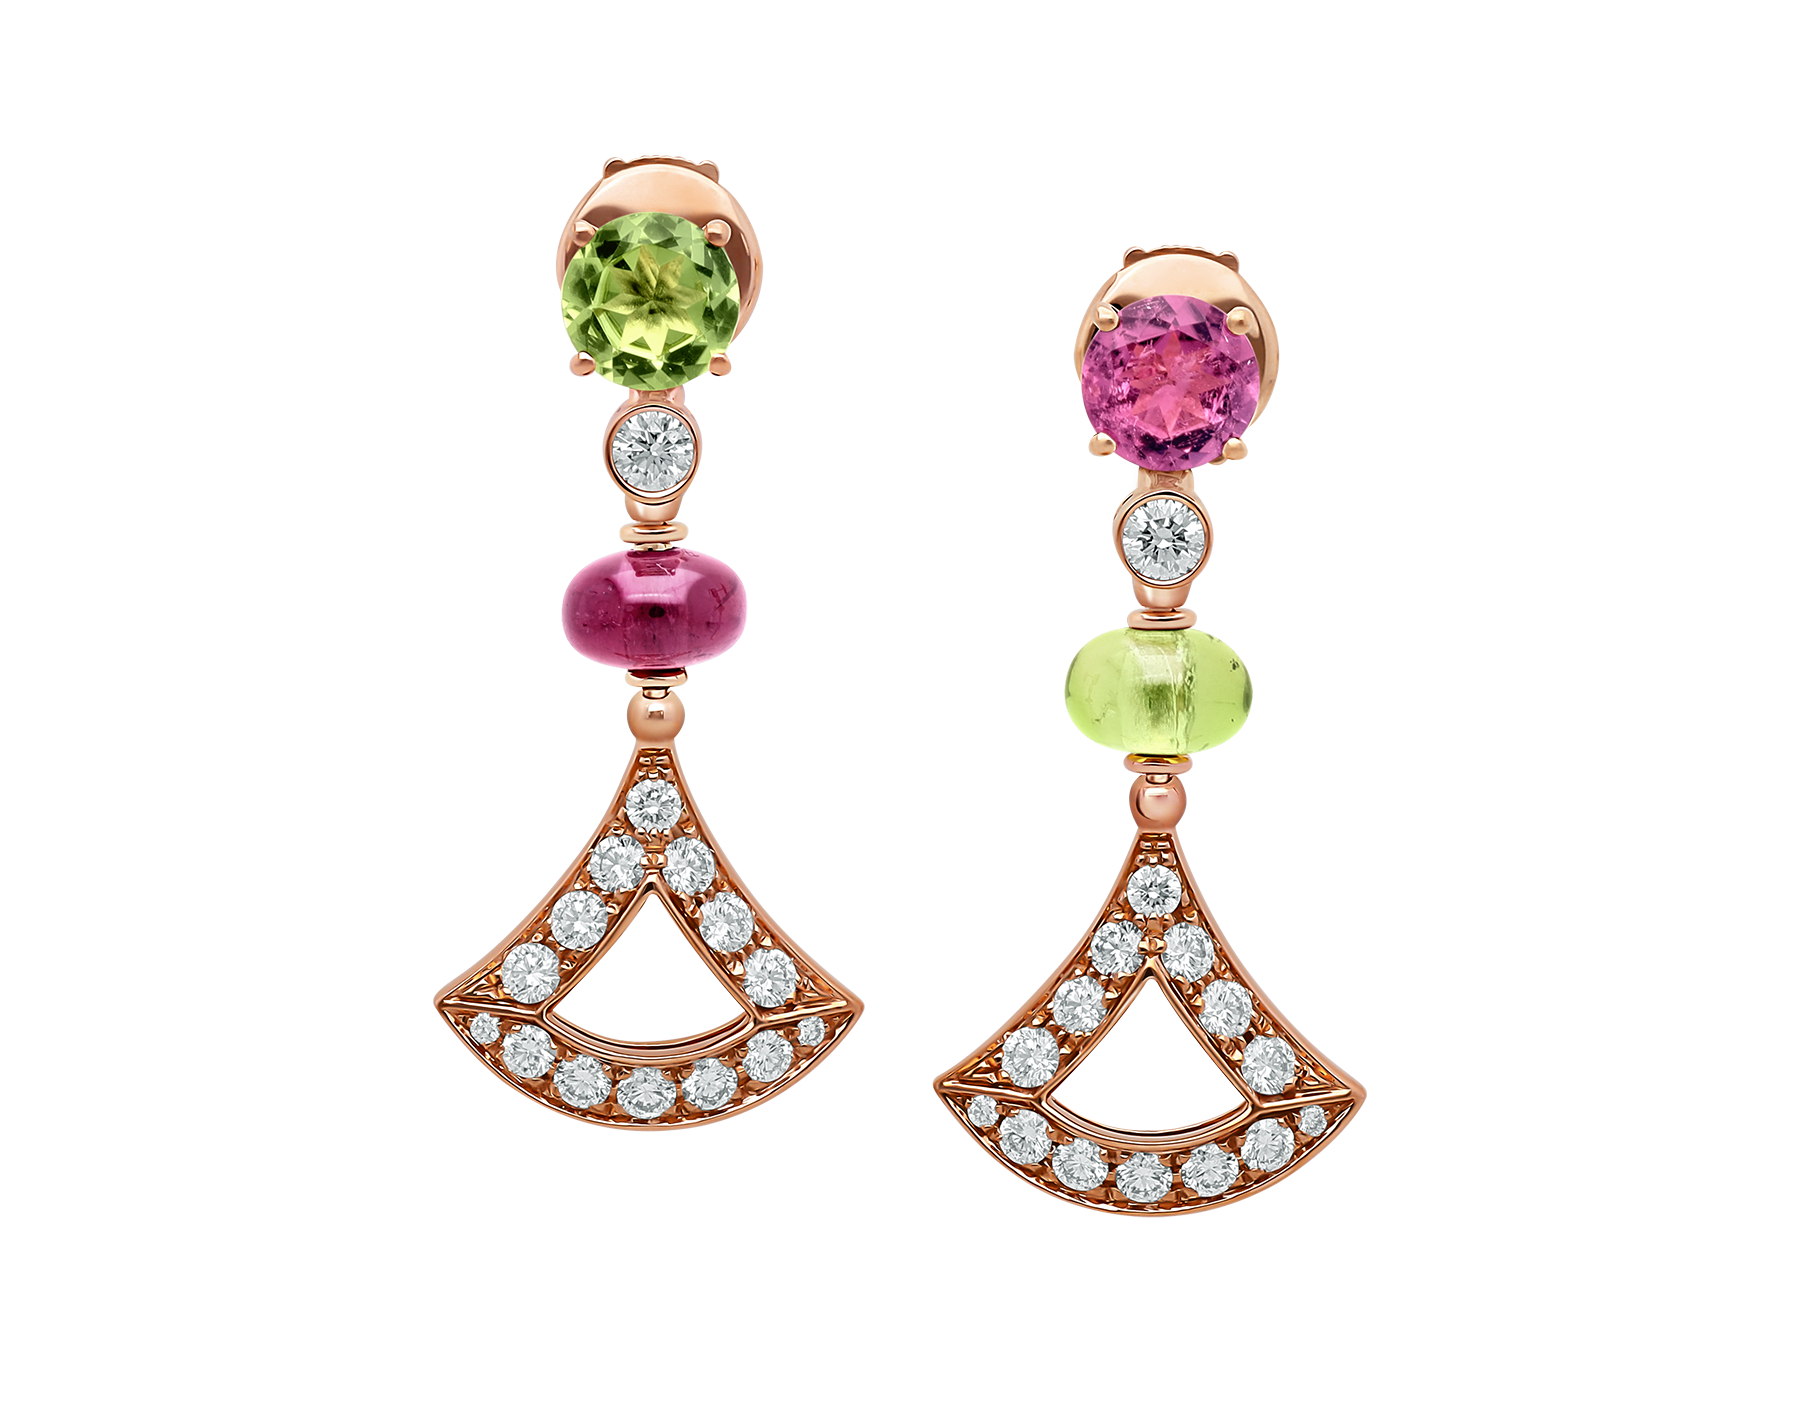 DIVAS' DREAM 18 kt rose gold earrings set with coloured gemstones and pavé diamonds 355616 image 1